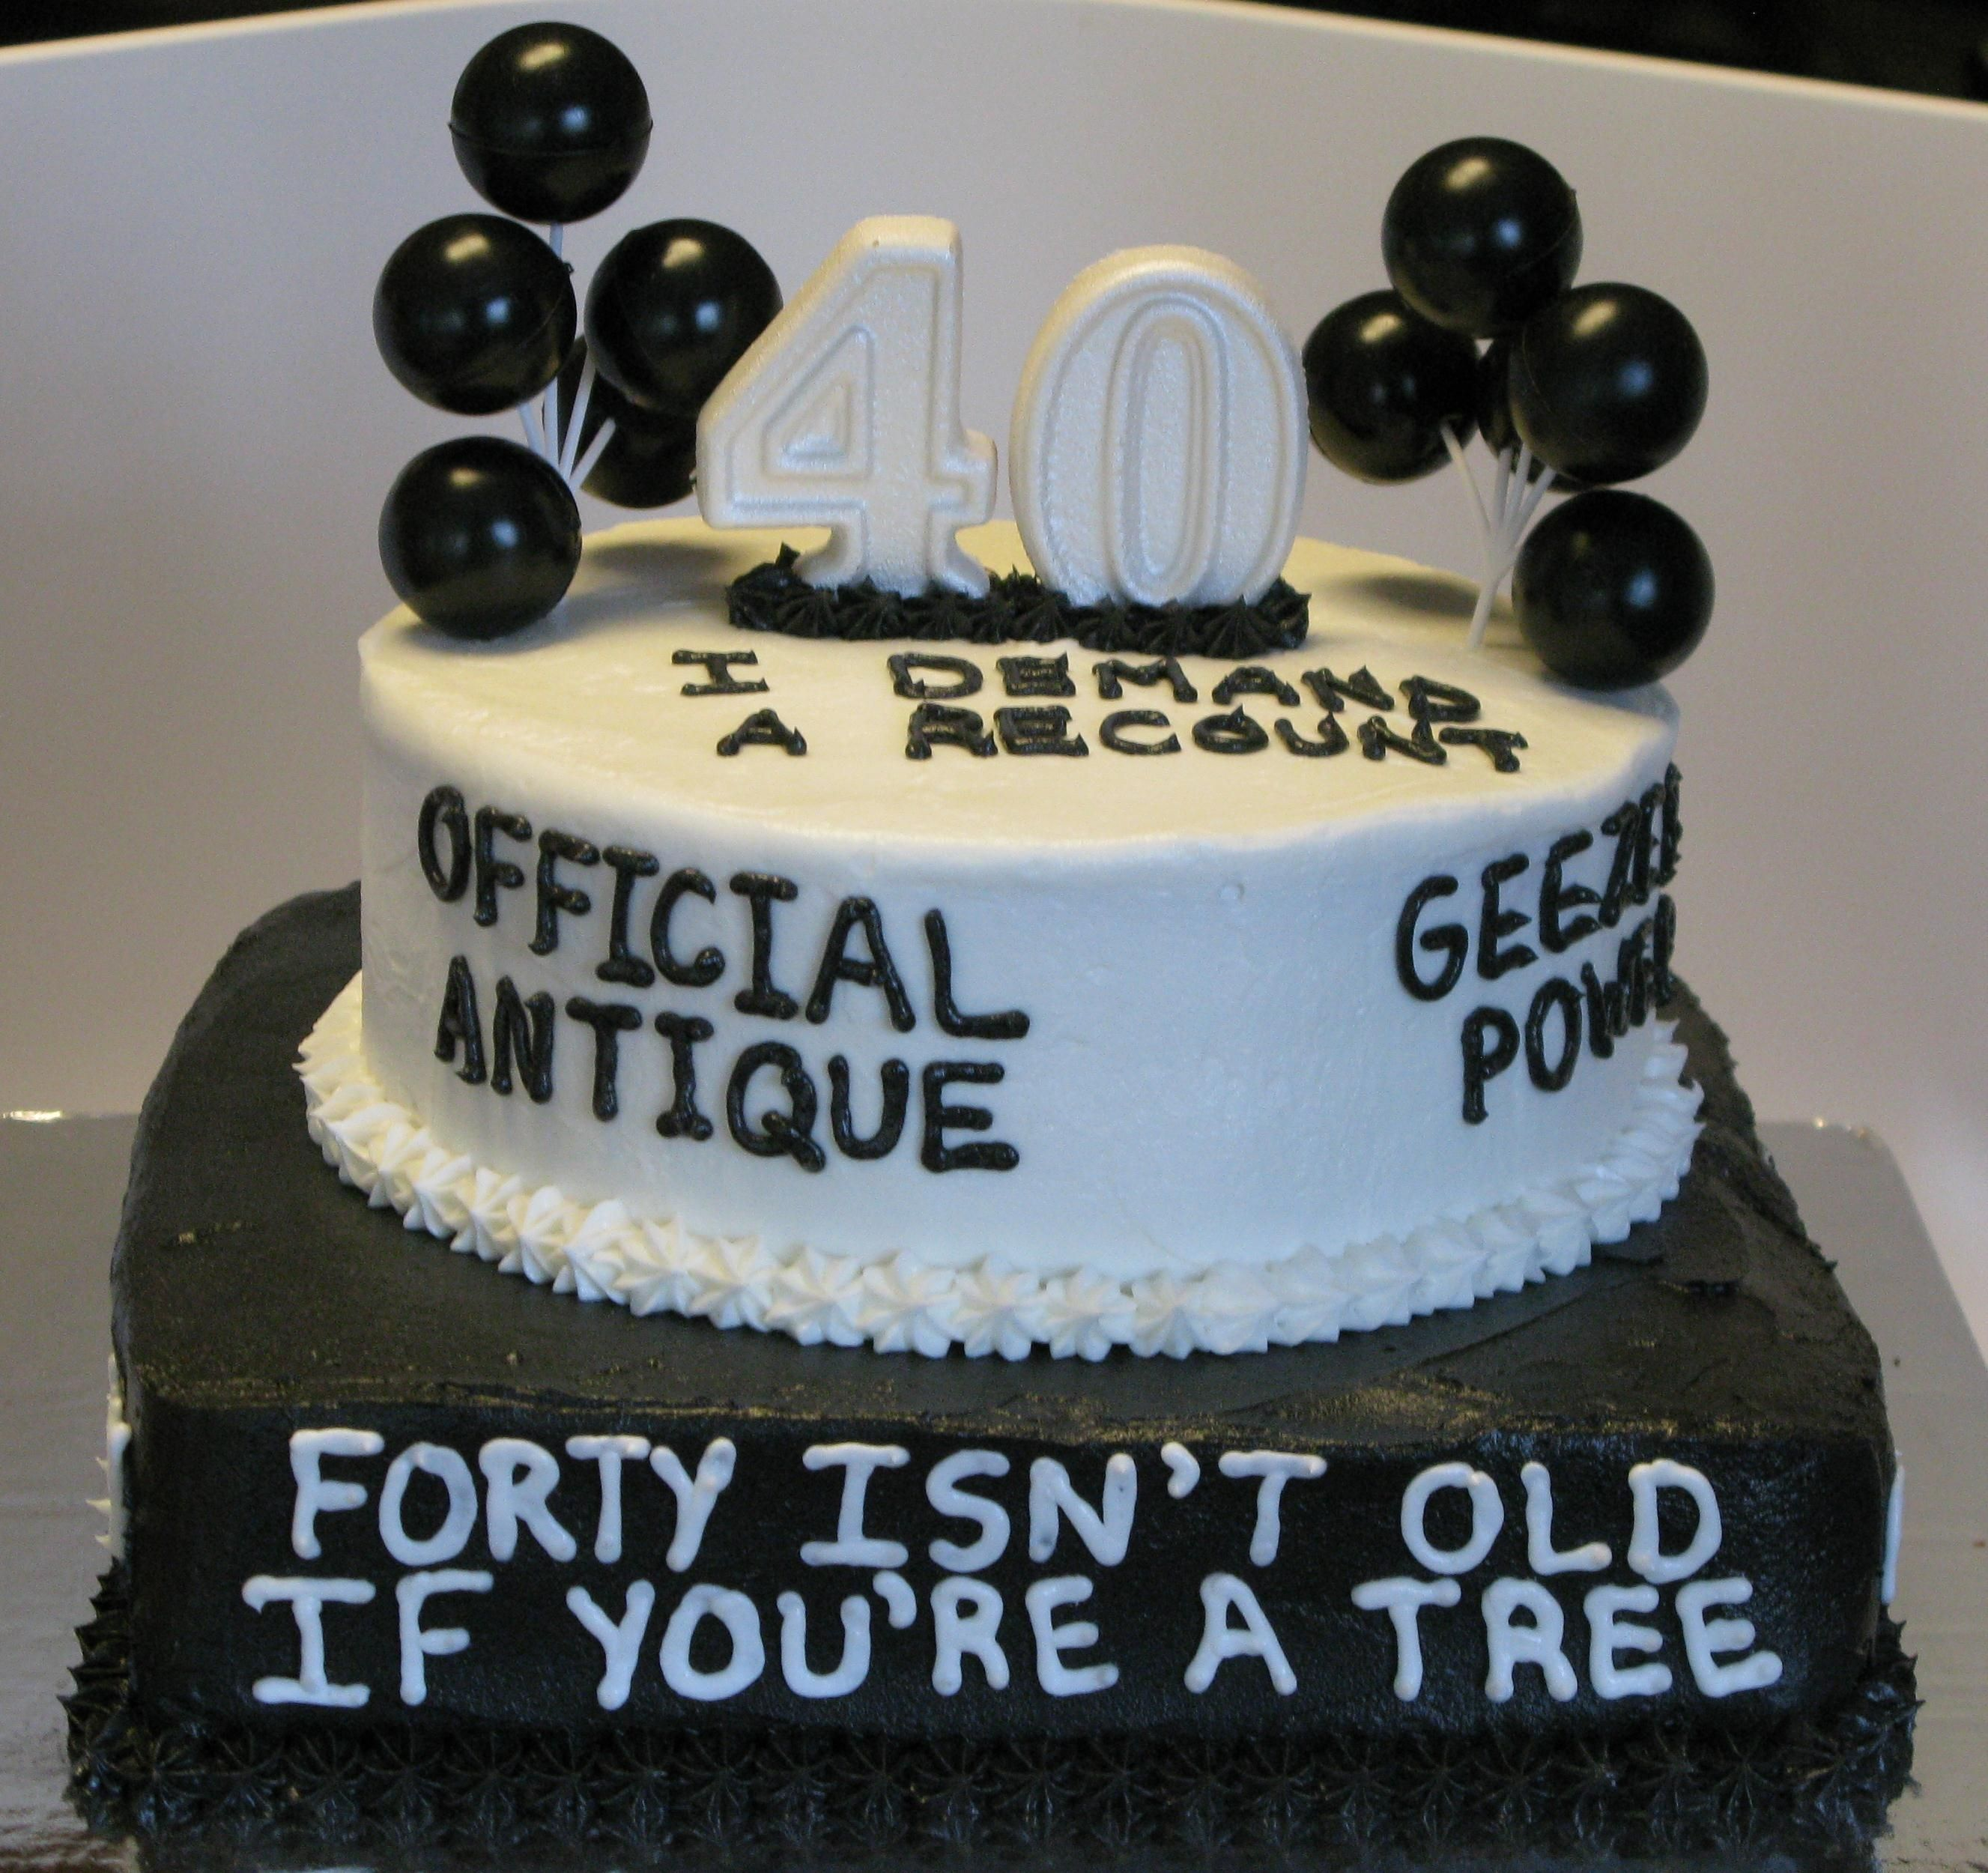 Funny 40th Birthday Cakes For Her 40th Birthday Cakes Funny Birthday Cakes 40th Birthday Cakes For Men